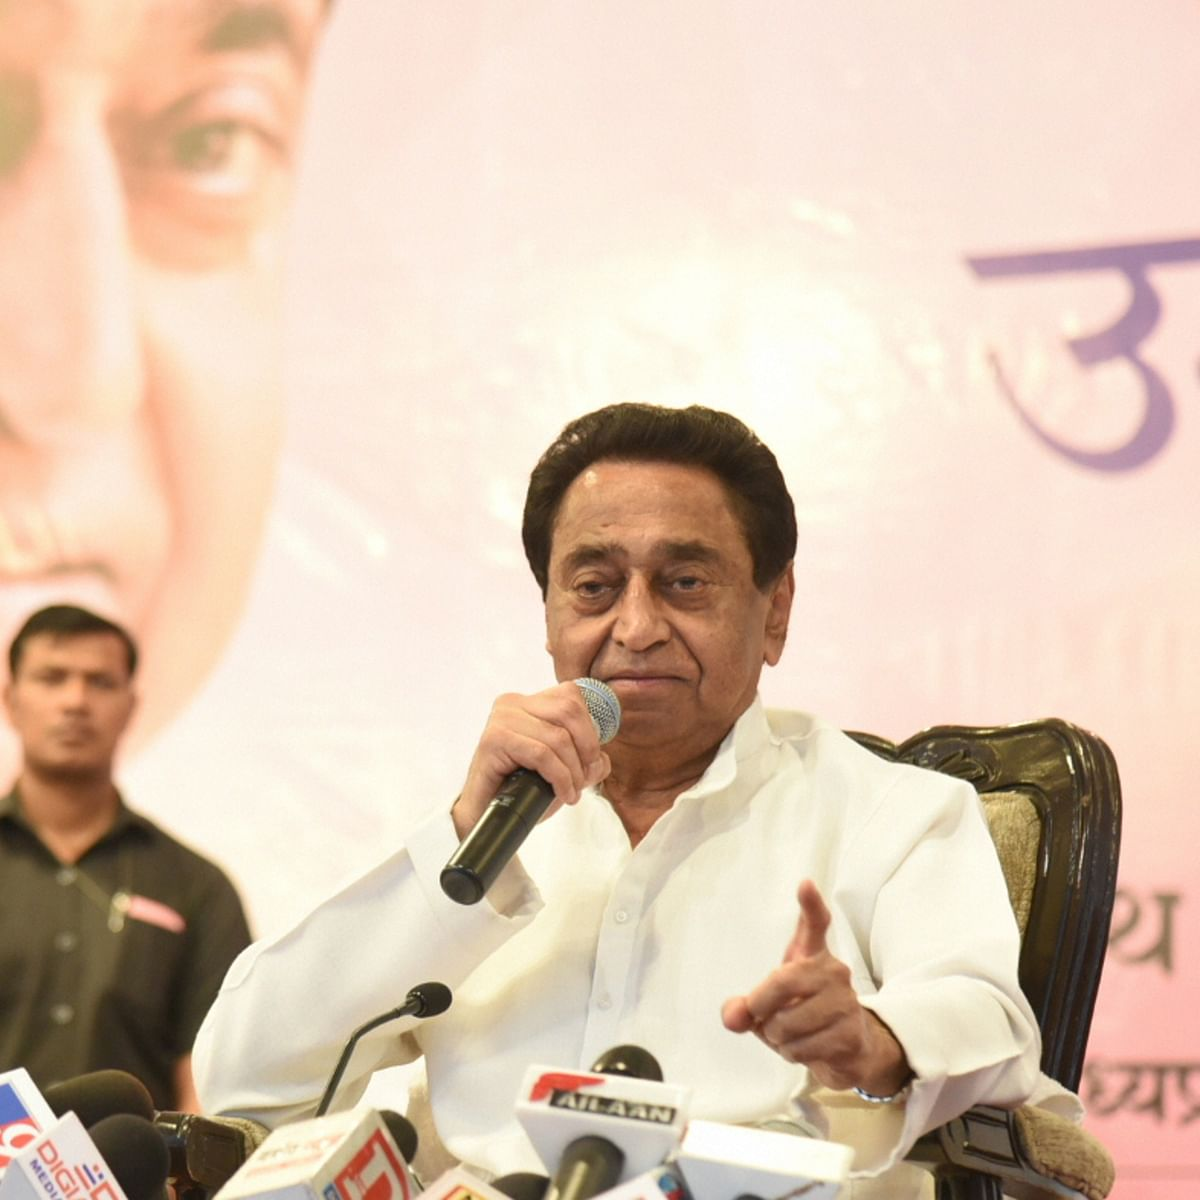 Madhya Pradesh Bypolls: Kamal Nath's survey for tickets may weigh heavy on party